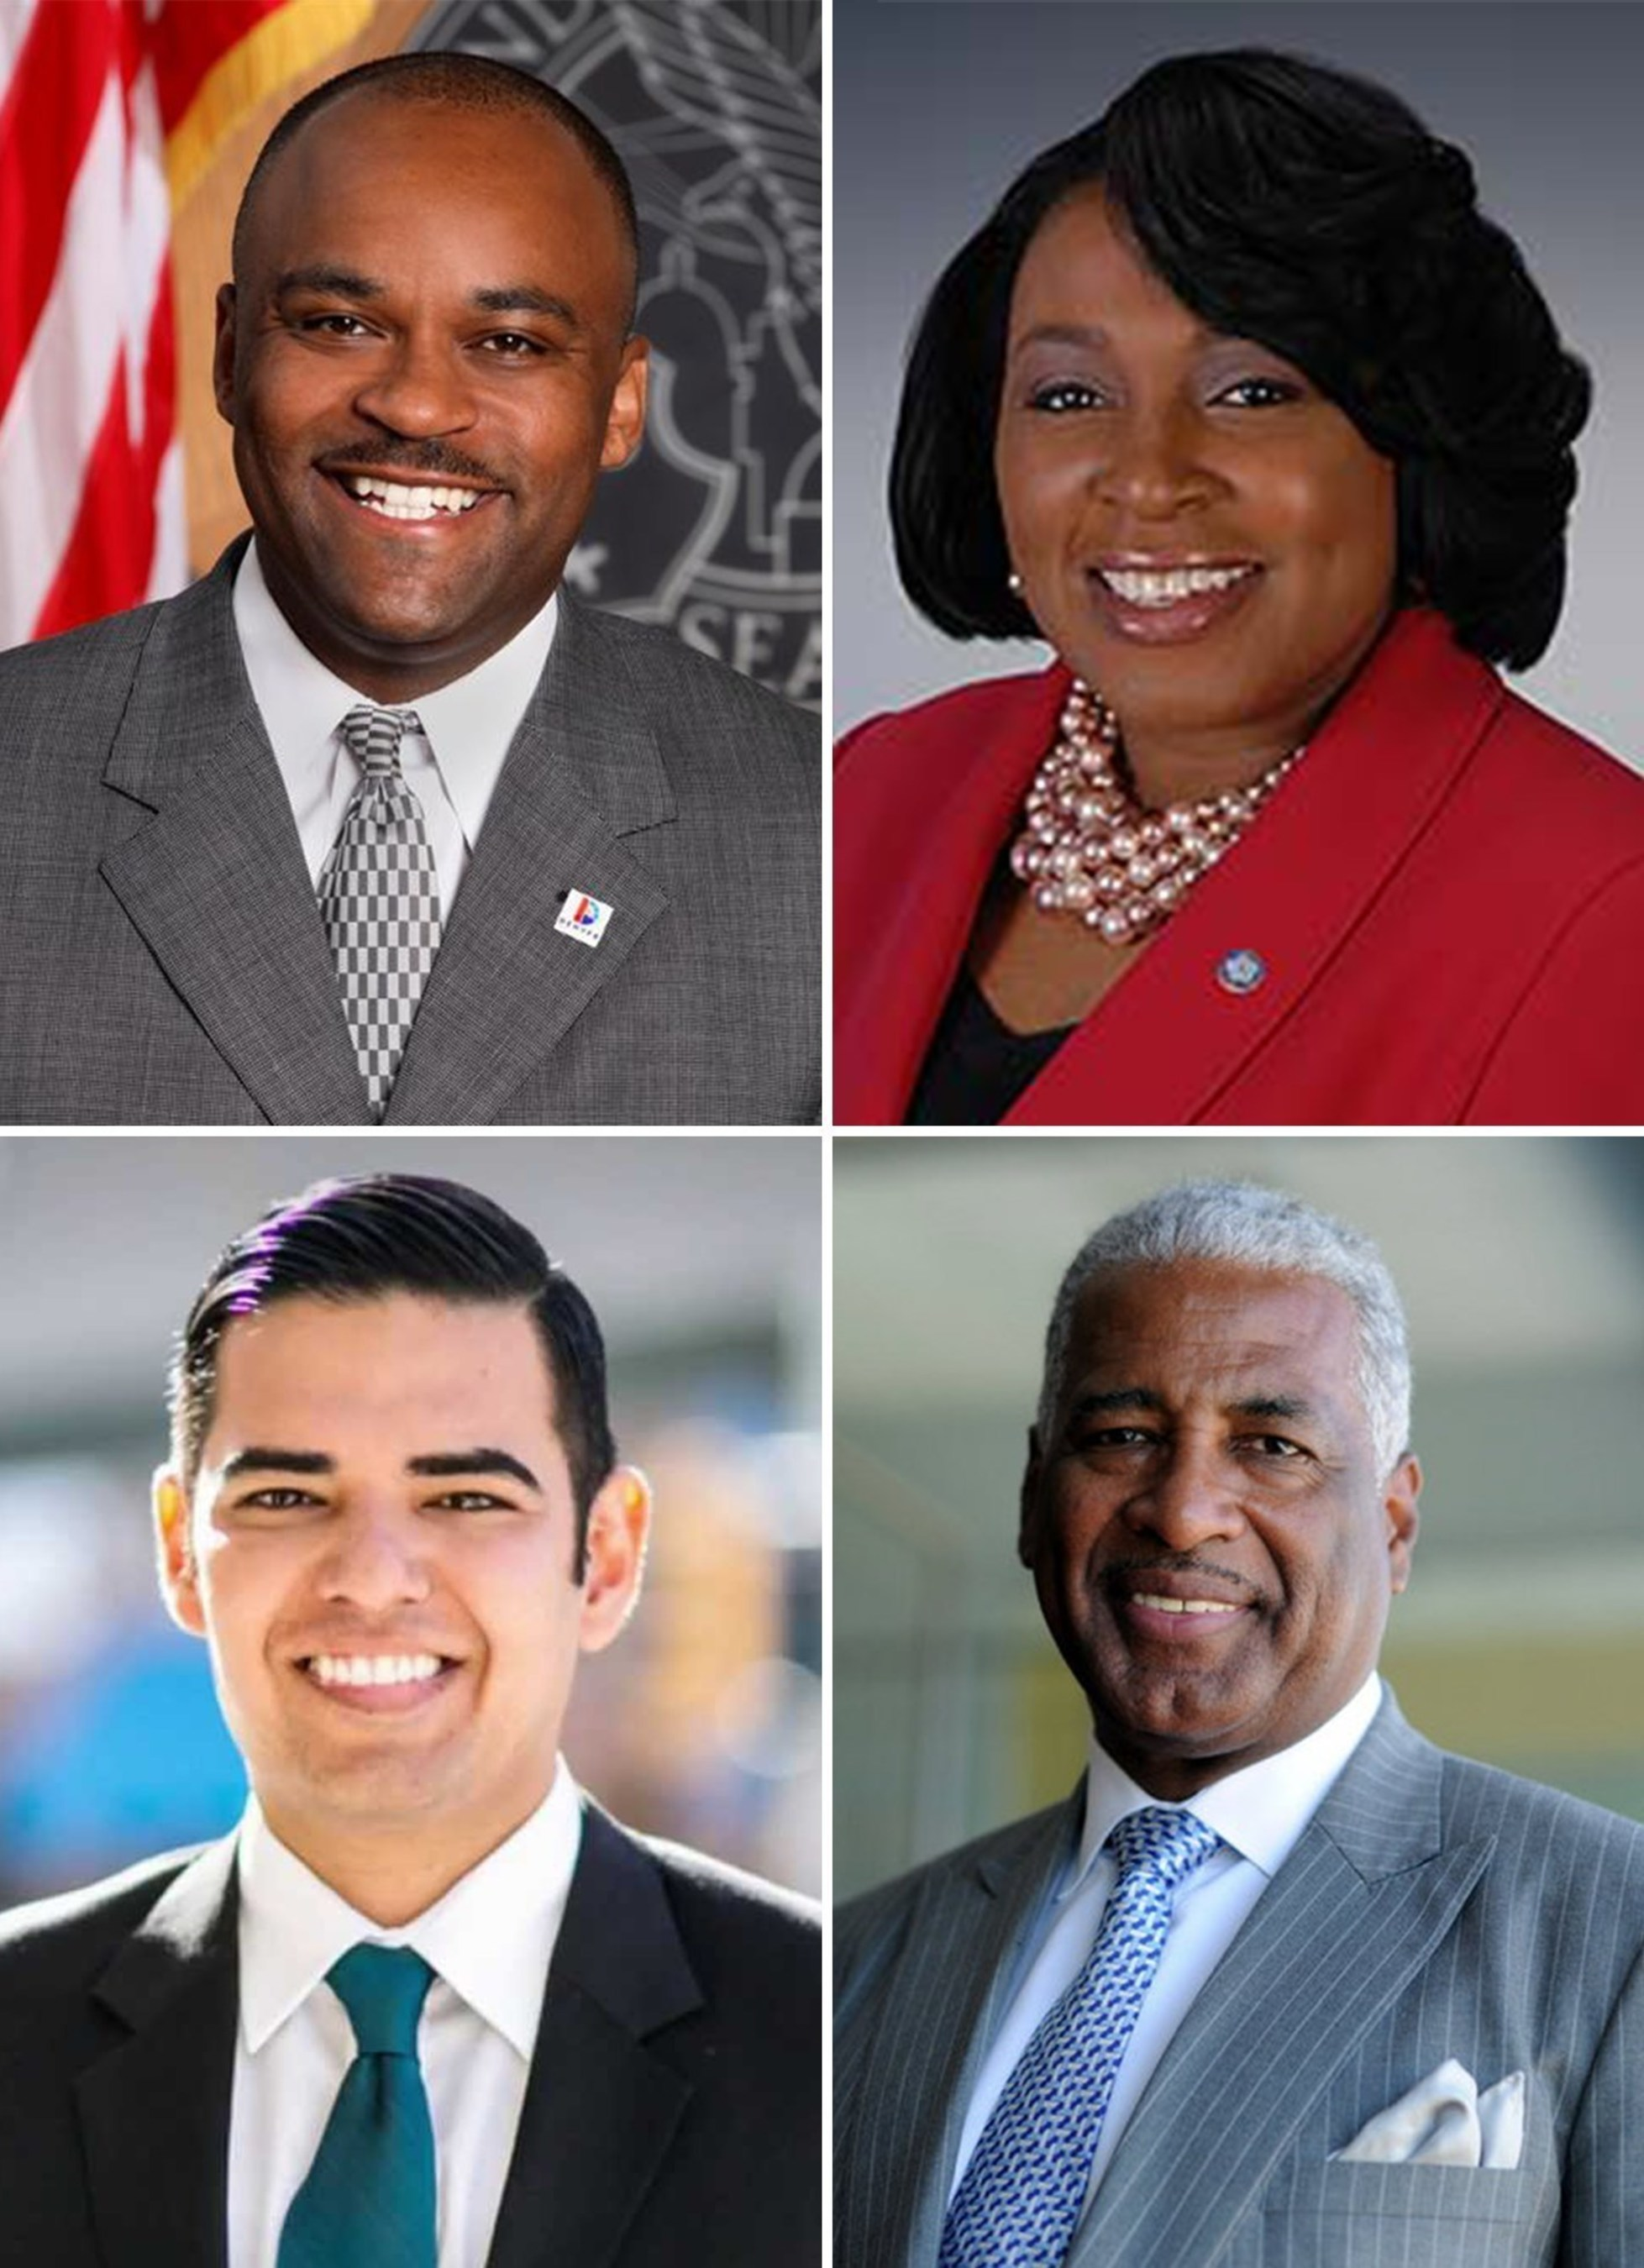 The National League of Cities (NLC) and the Urban Land Institute (ULI) today announced that mayors from four cities-Birmingham, Ala.; Denver; Long Beach, Calif.; and Rochester, N.Y.-have been selected as the 2016 class of Daniel Rose Fellows by the Rose Center for Public Leadership in Land Use. Clockwise from upper left: Denver Mayor Michael Hancock, Rochester Mayor Lovely A. Warren, Birmingham Mayor William Bell and Long Beach Mayor Robert Garcia.